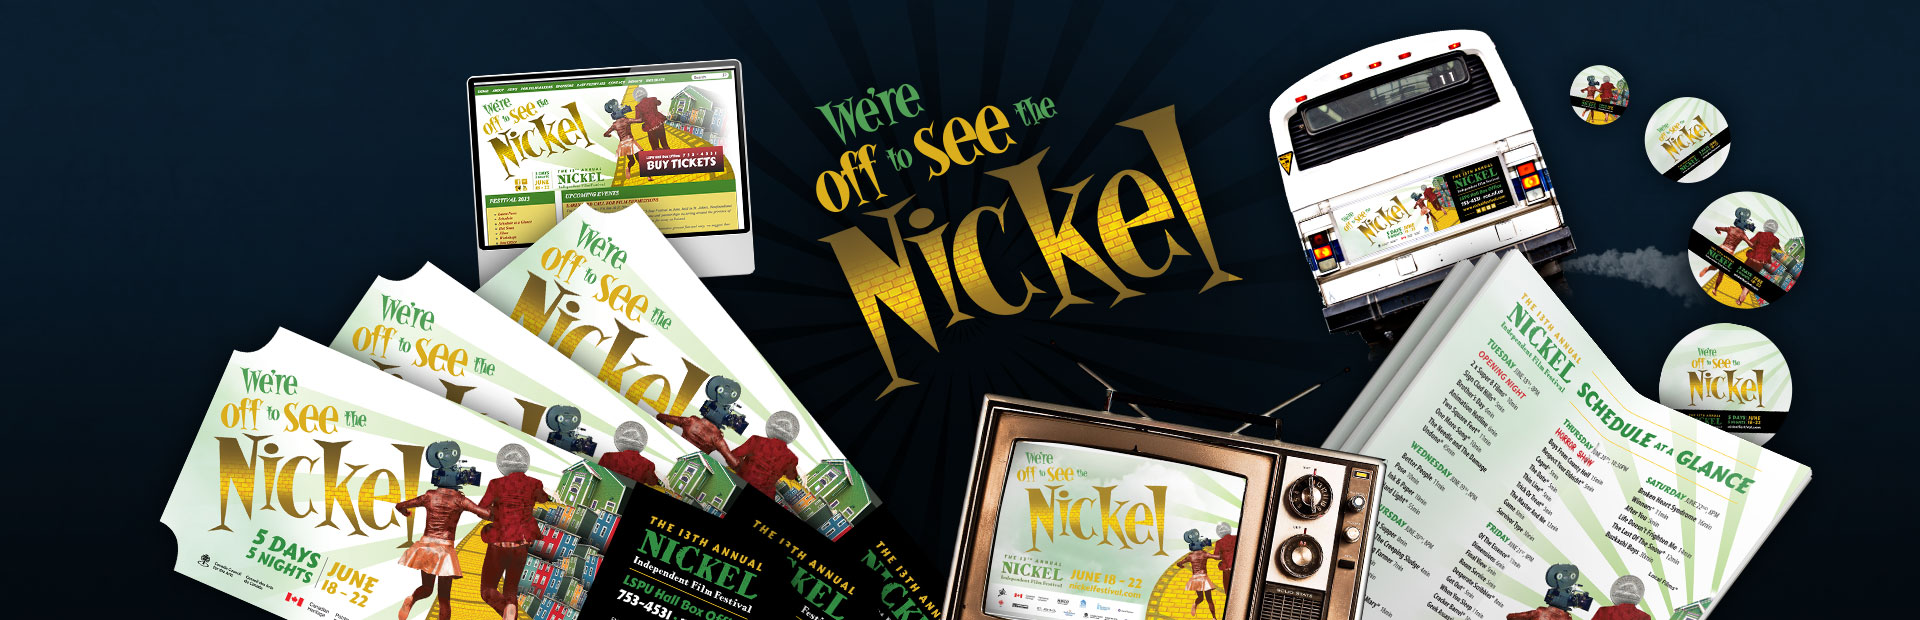 We're Off to See the Nickel